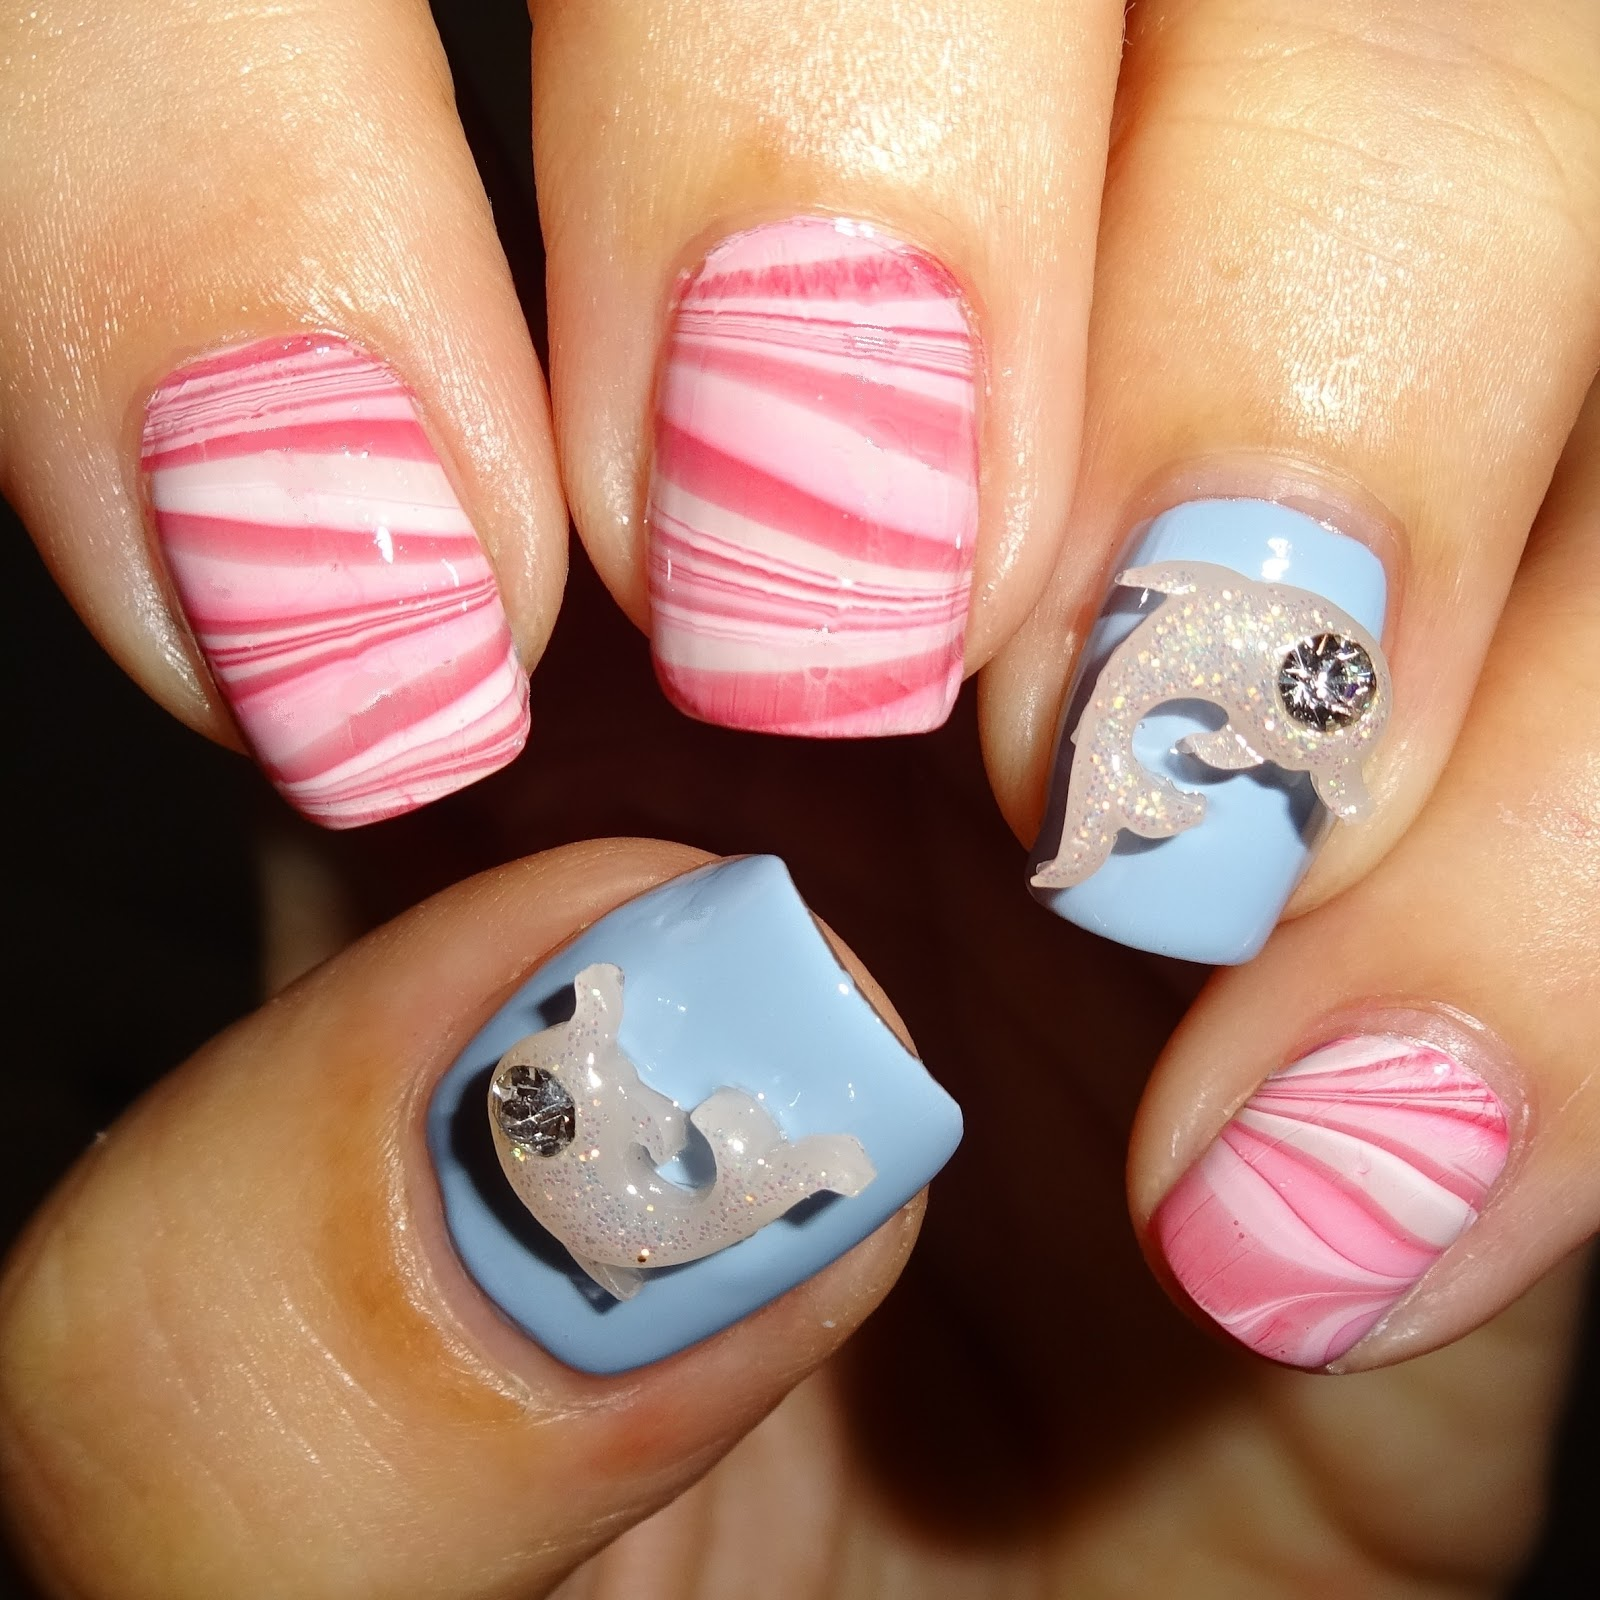 Wendys Delights 3d Dolphin Nail Art Charms From Charlies Nail Art